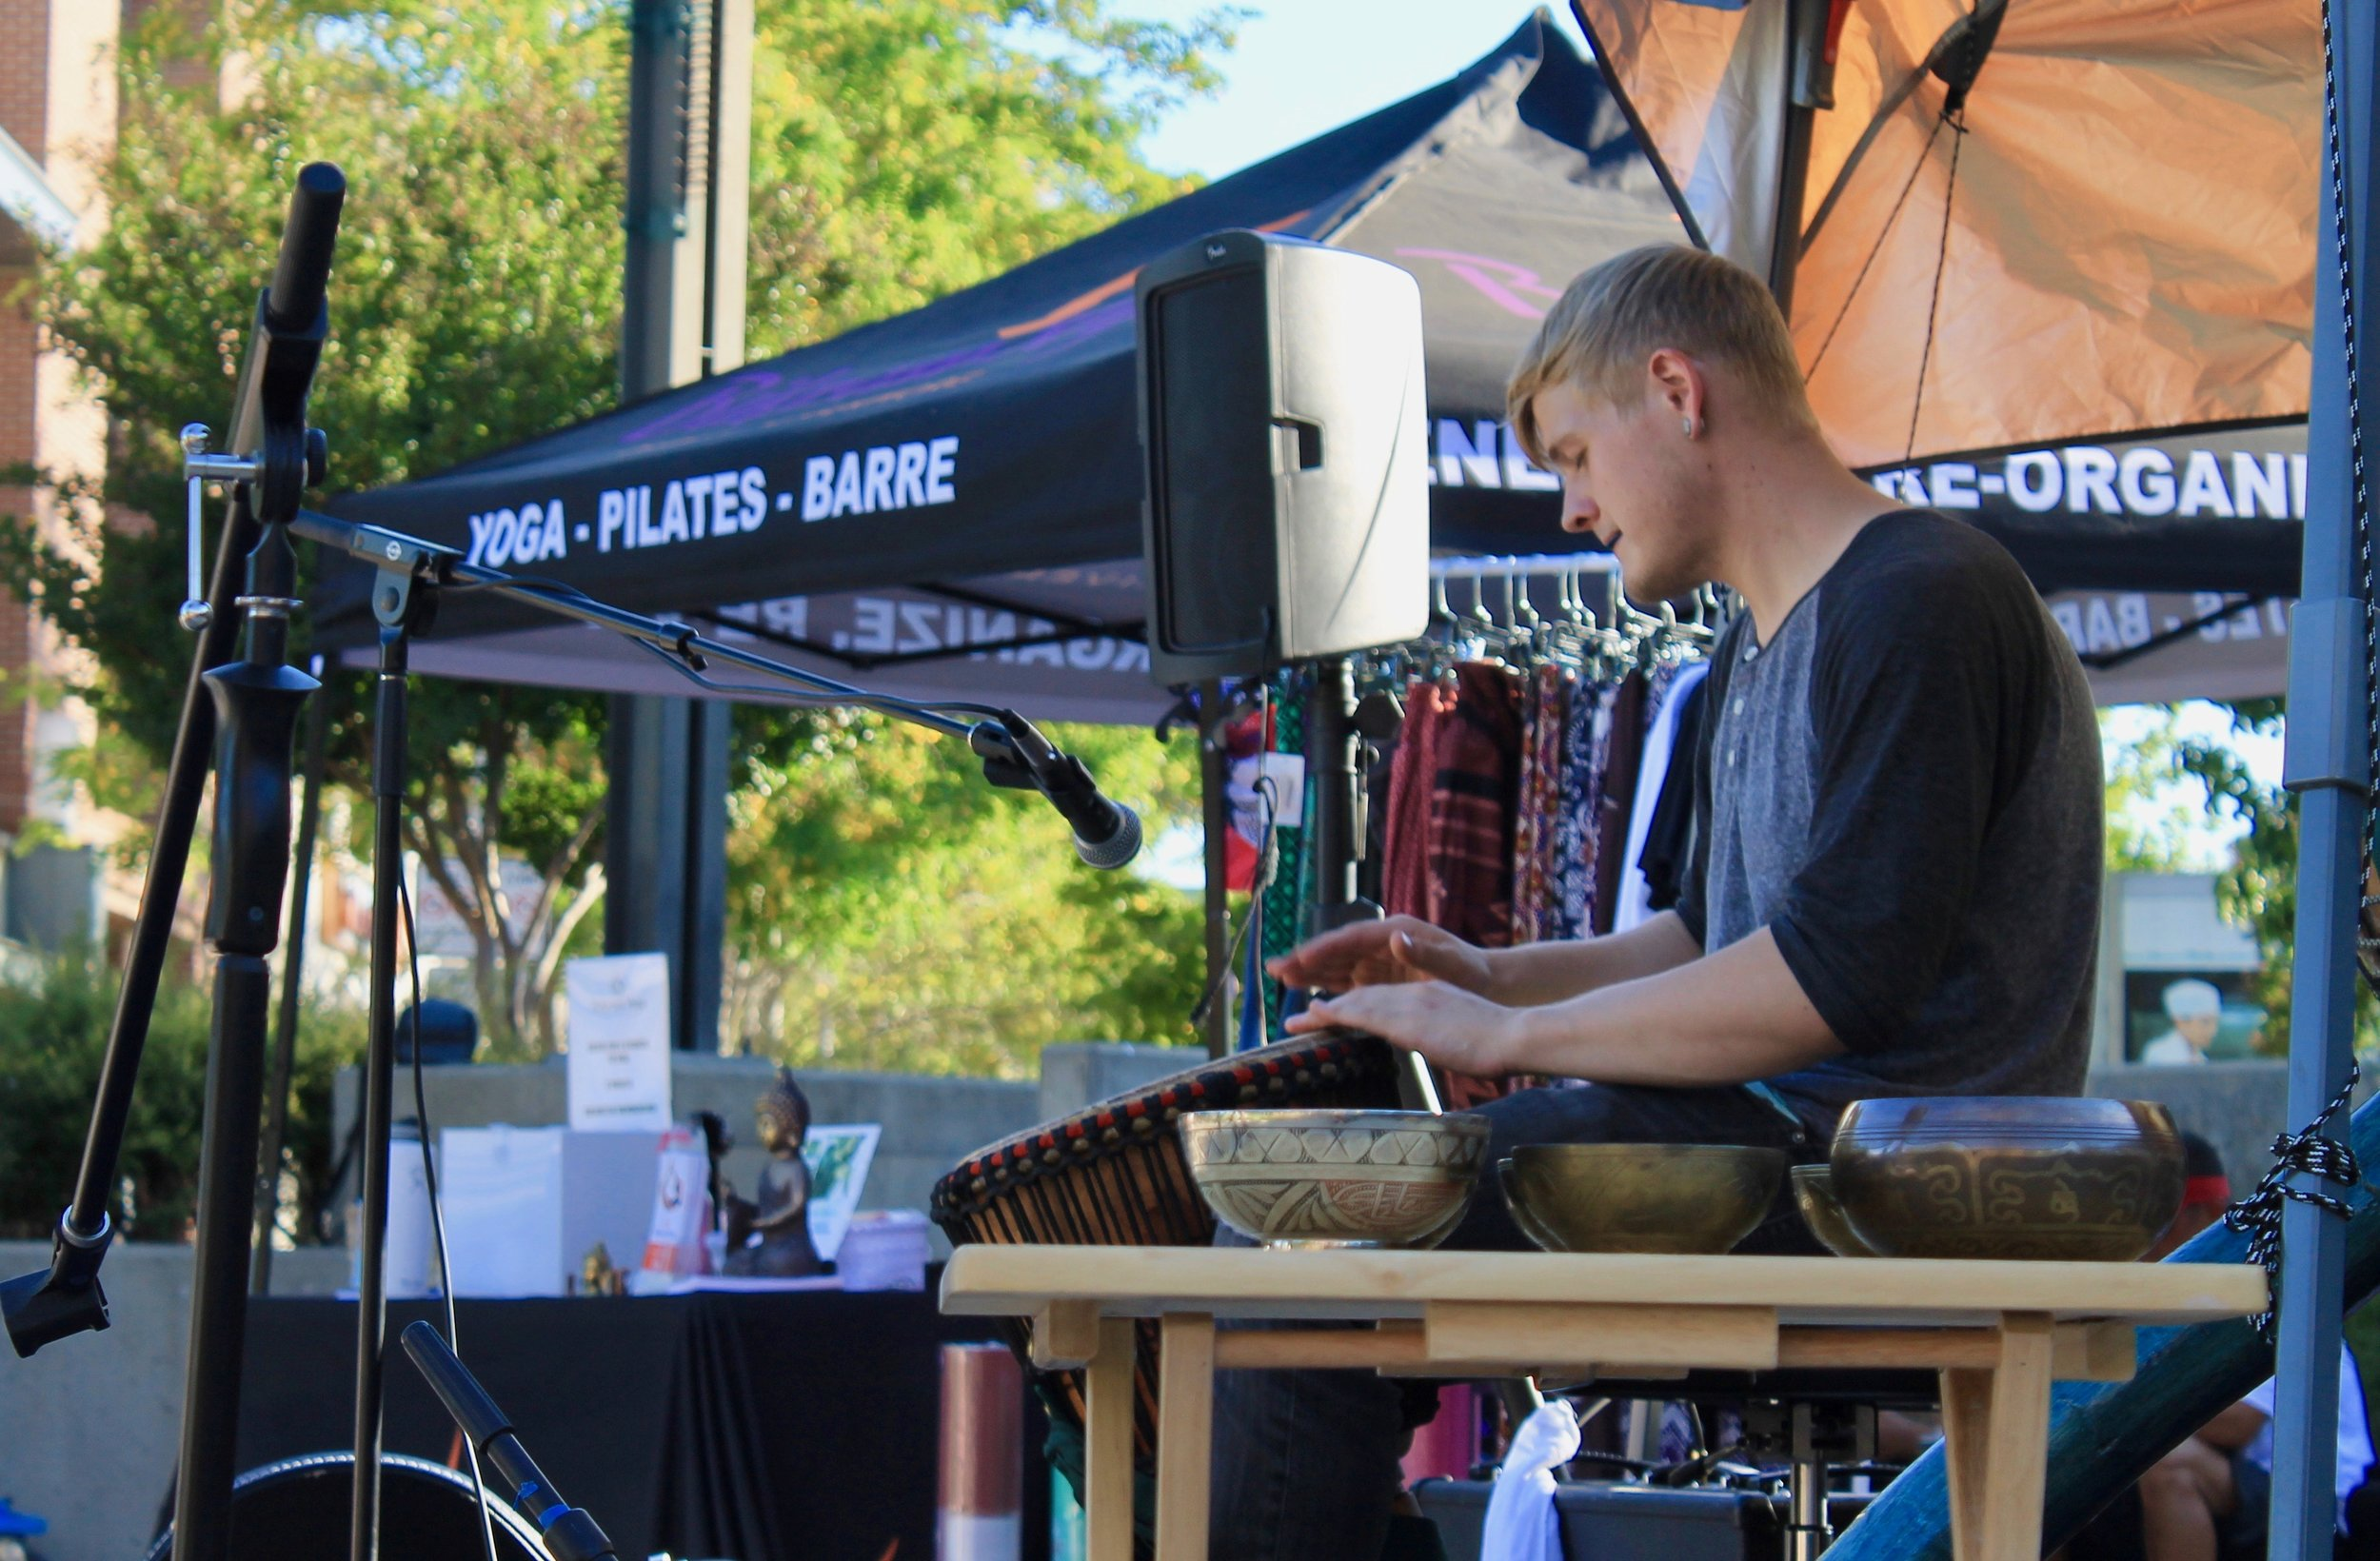 Live Music with an intentional and improvisational blend of tones, rhythms, and vibrations of the hand pan, didgeridoo, keyboard, flute, voice and upbeat drumming that follows and supports the flow of yoga. -